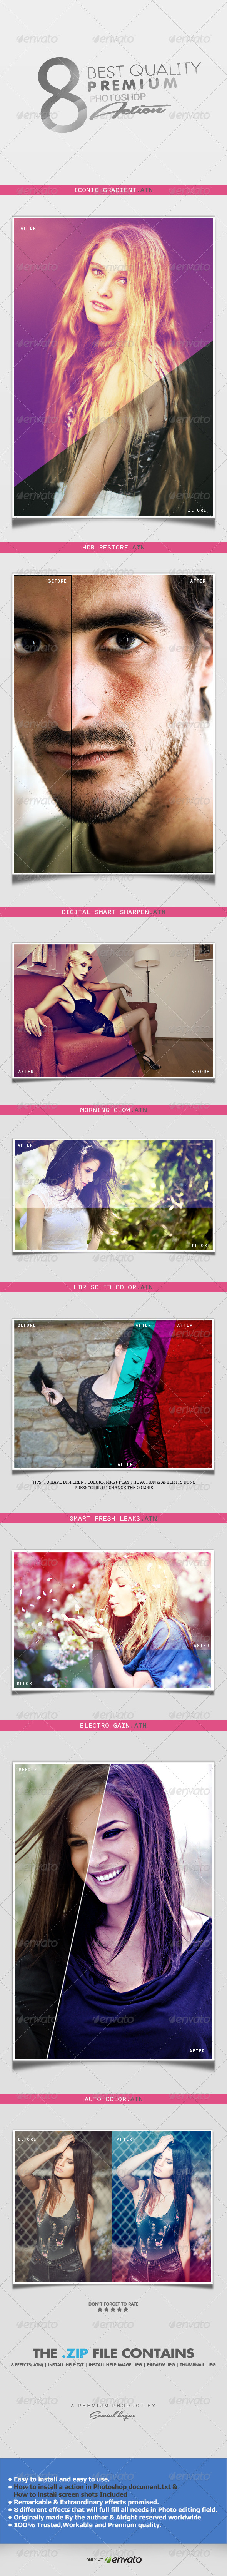 GraphicRiver 8 Best Quality Premium Photoshop Action 4276179